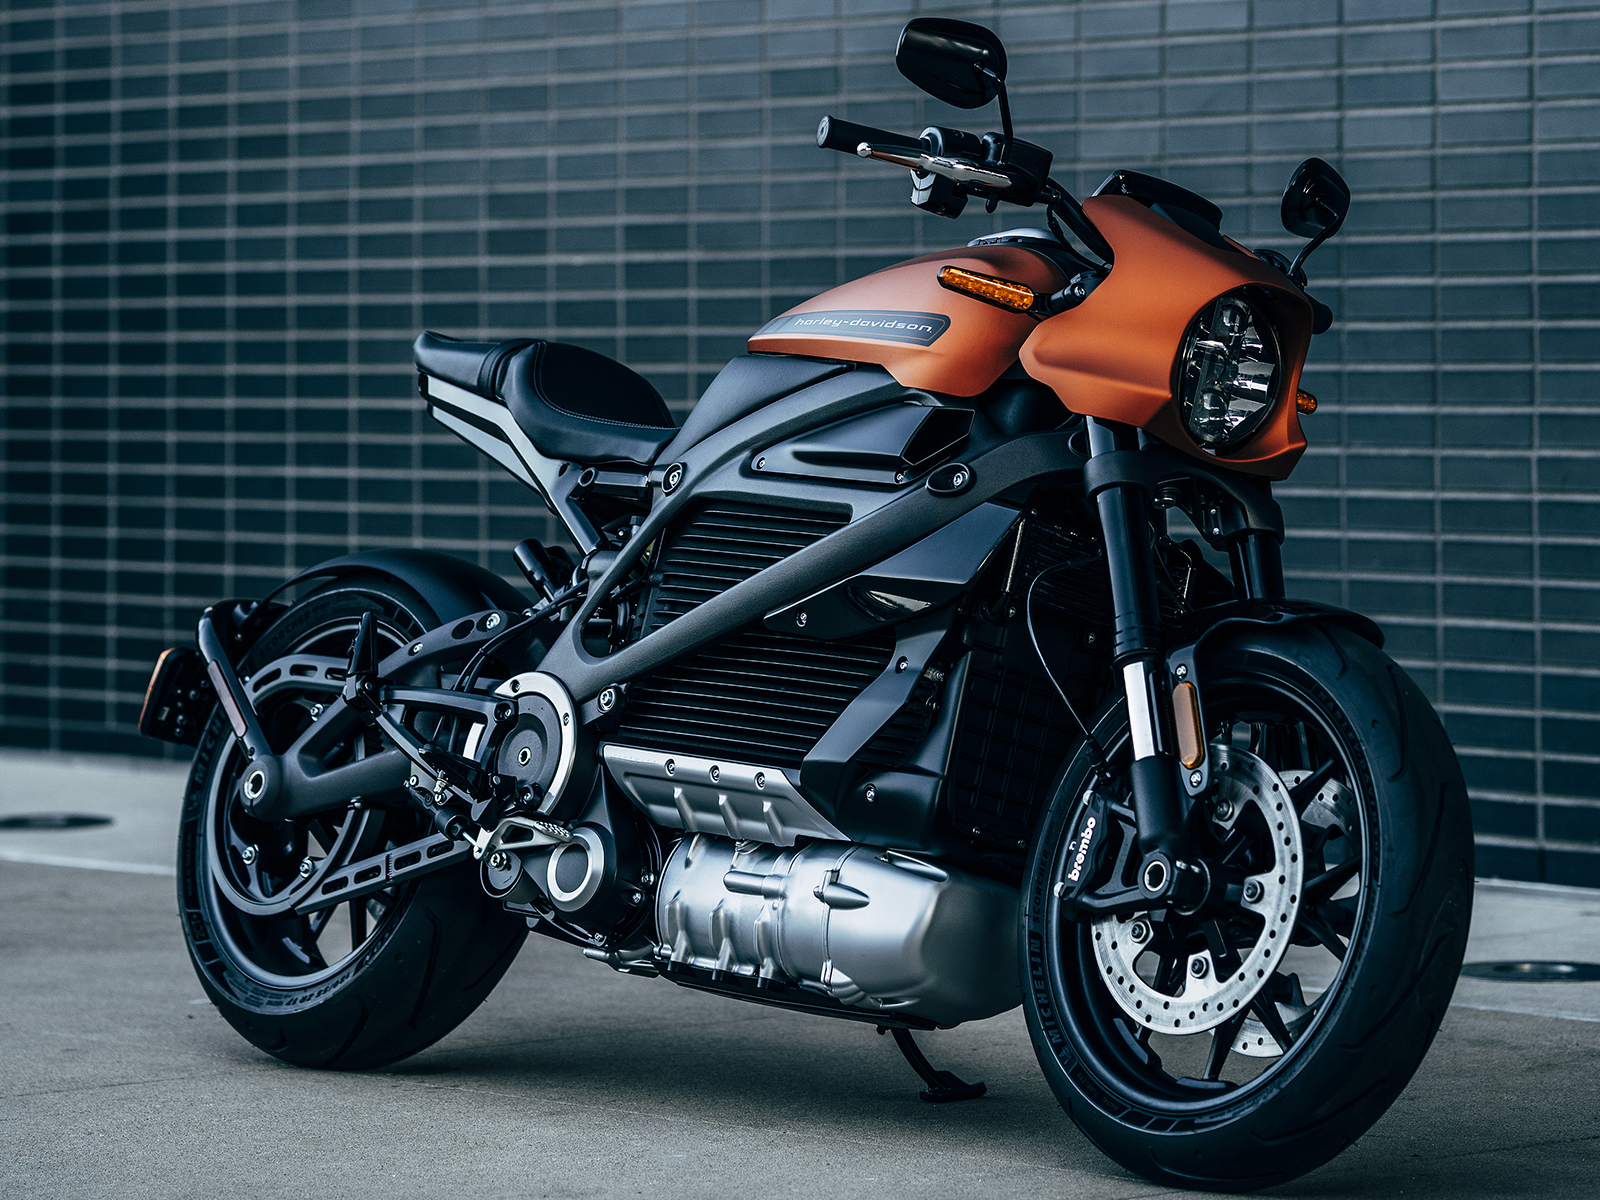 The new Harley Davidson Livewire One motorcycle